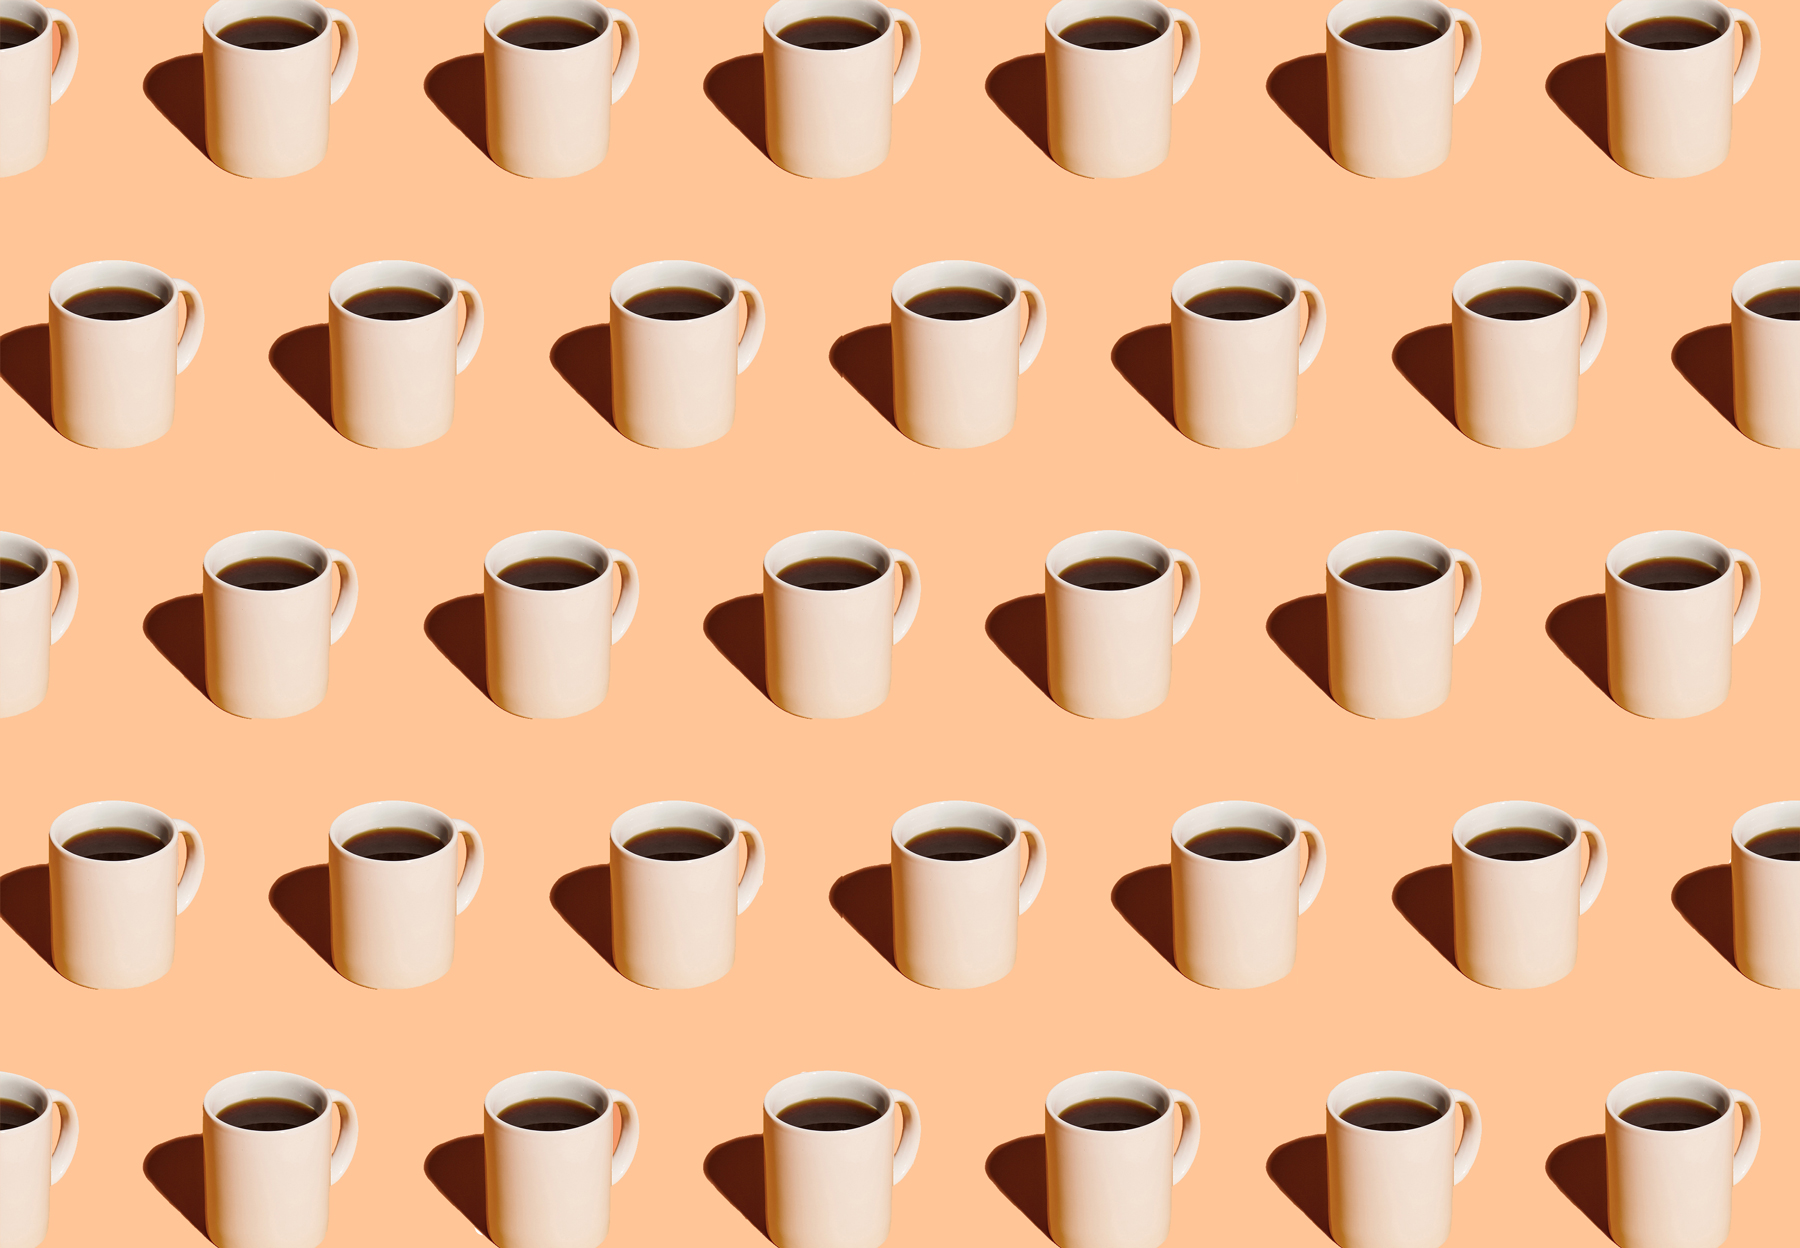 Coffee and migraines connection - quantity